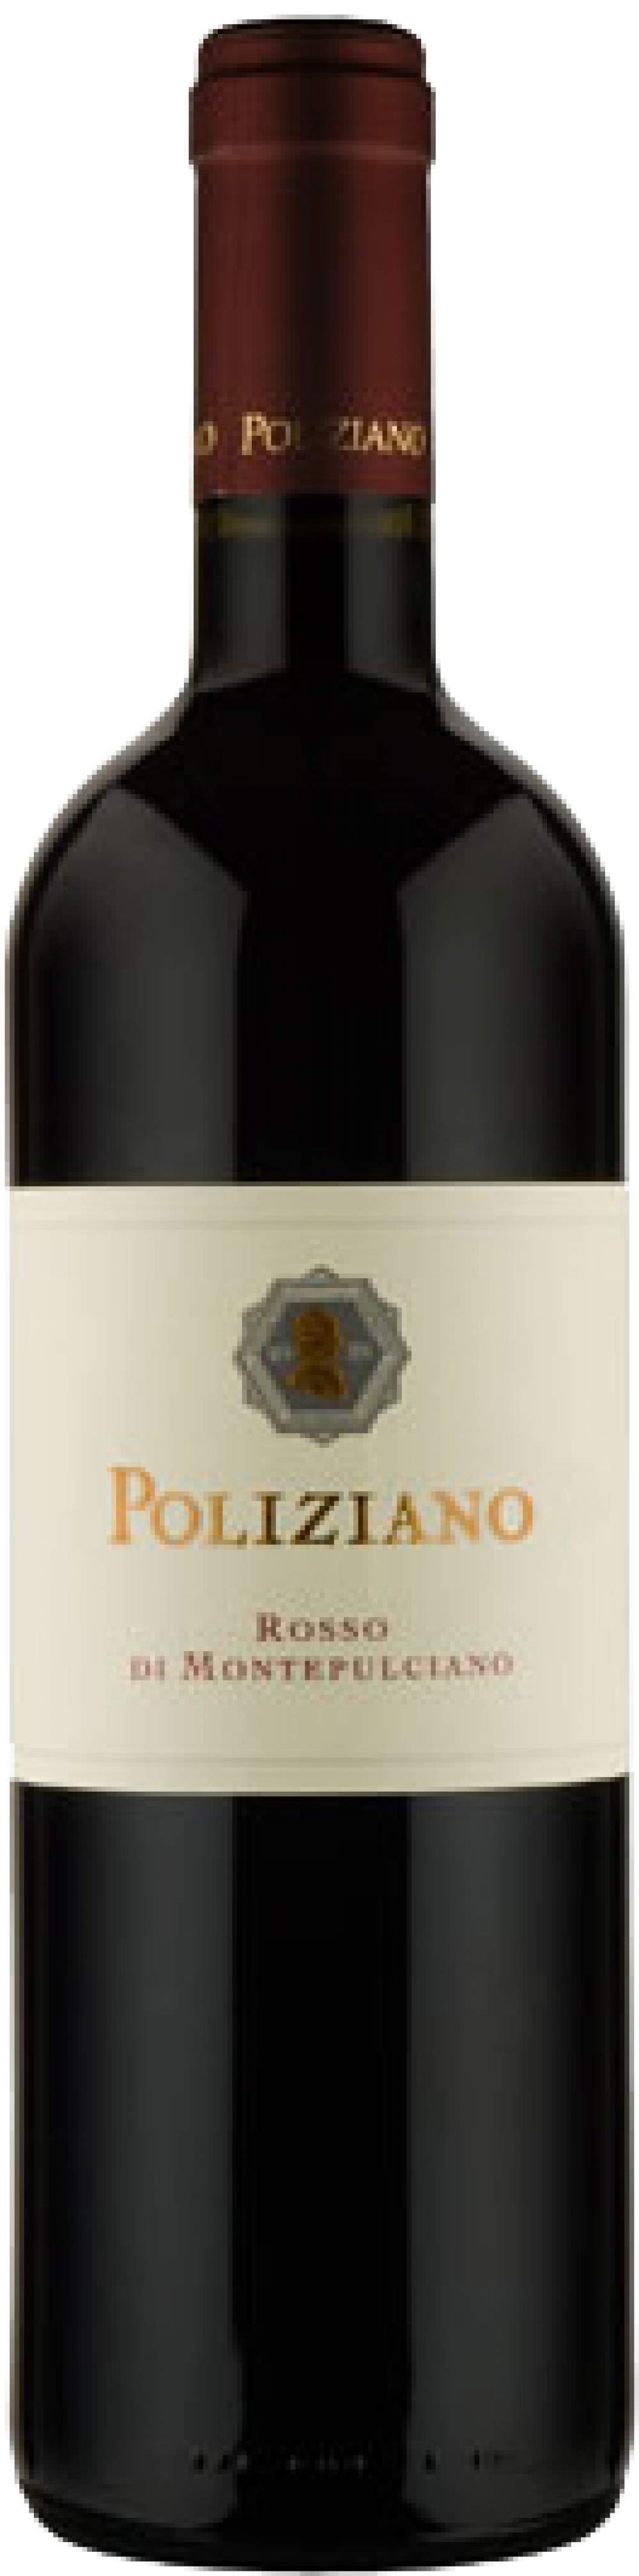 files/images/wines/Italy/poliziano-tuscany/VTMR2012_pic_big.png